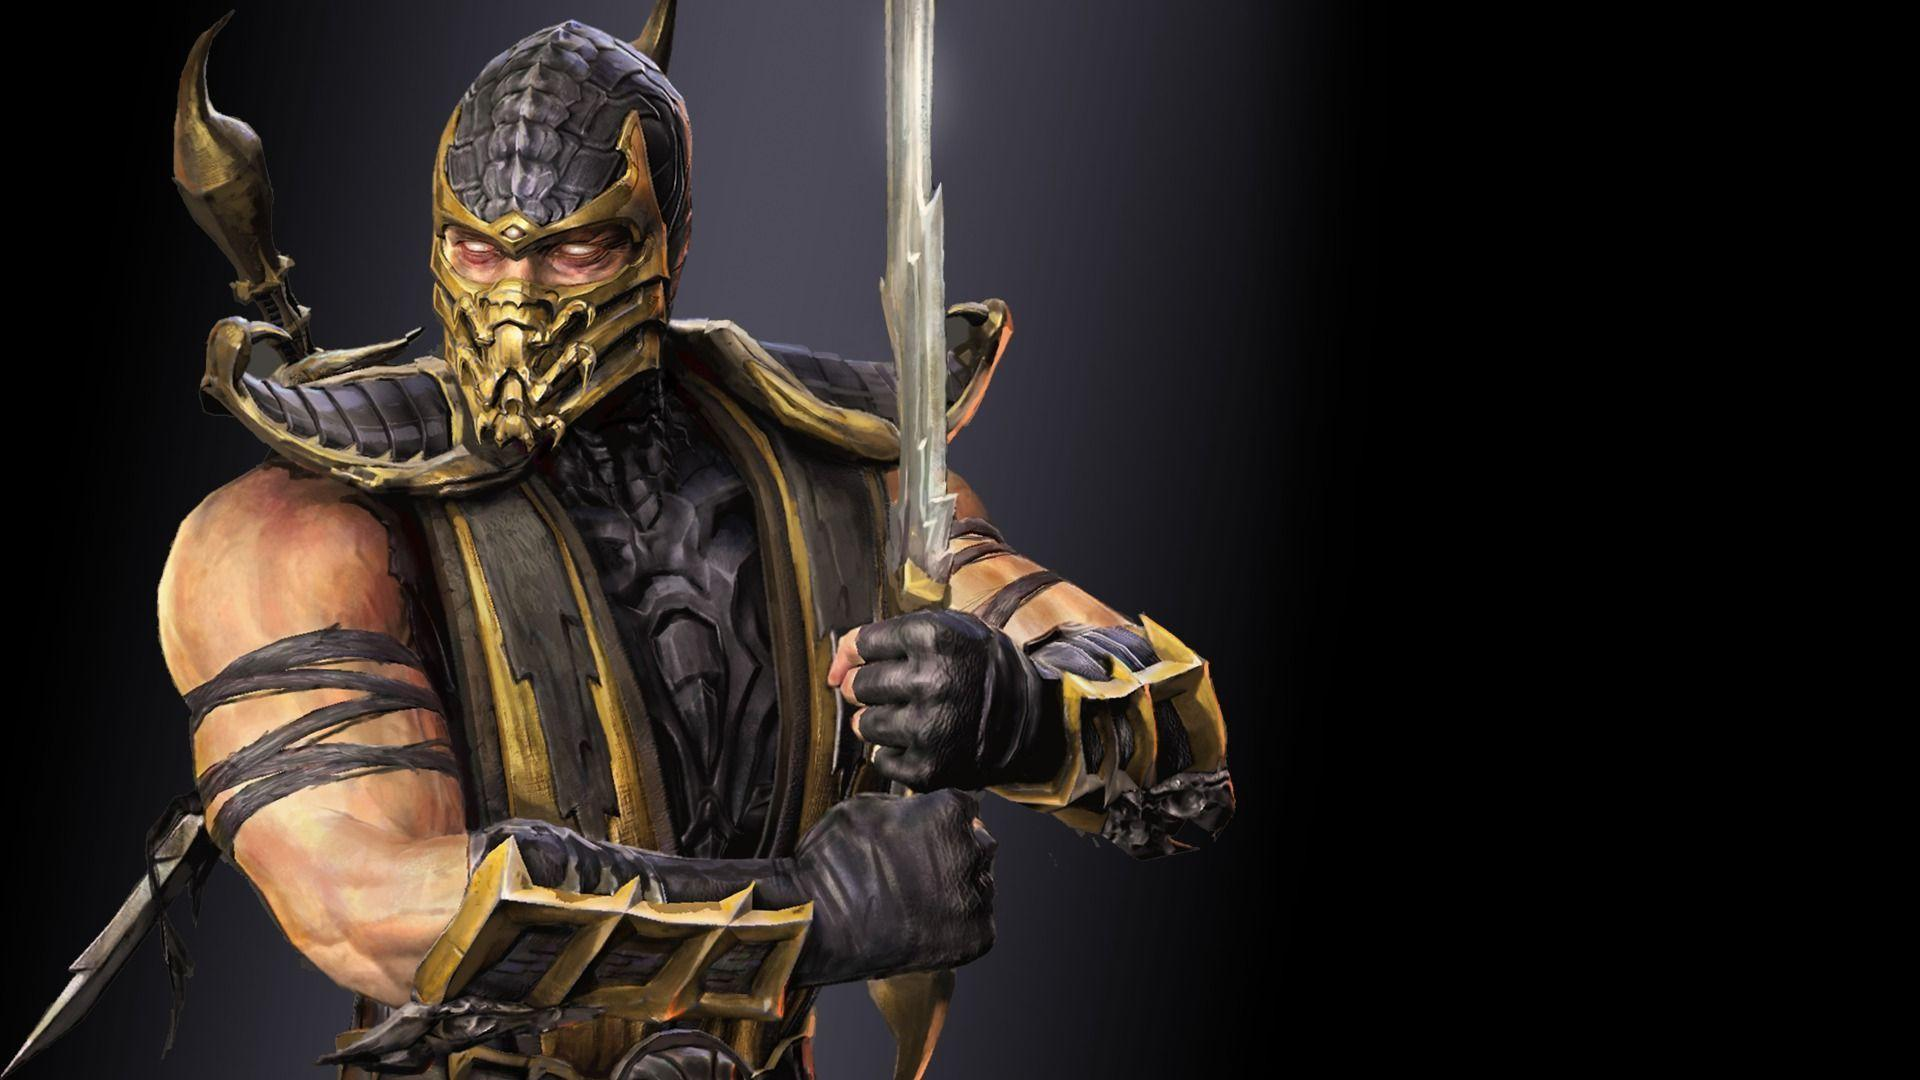 Mk Scorpion Wallpapers Top Free Mk Scorpion Backgrounds Wallpaperaccess